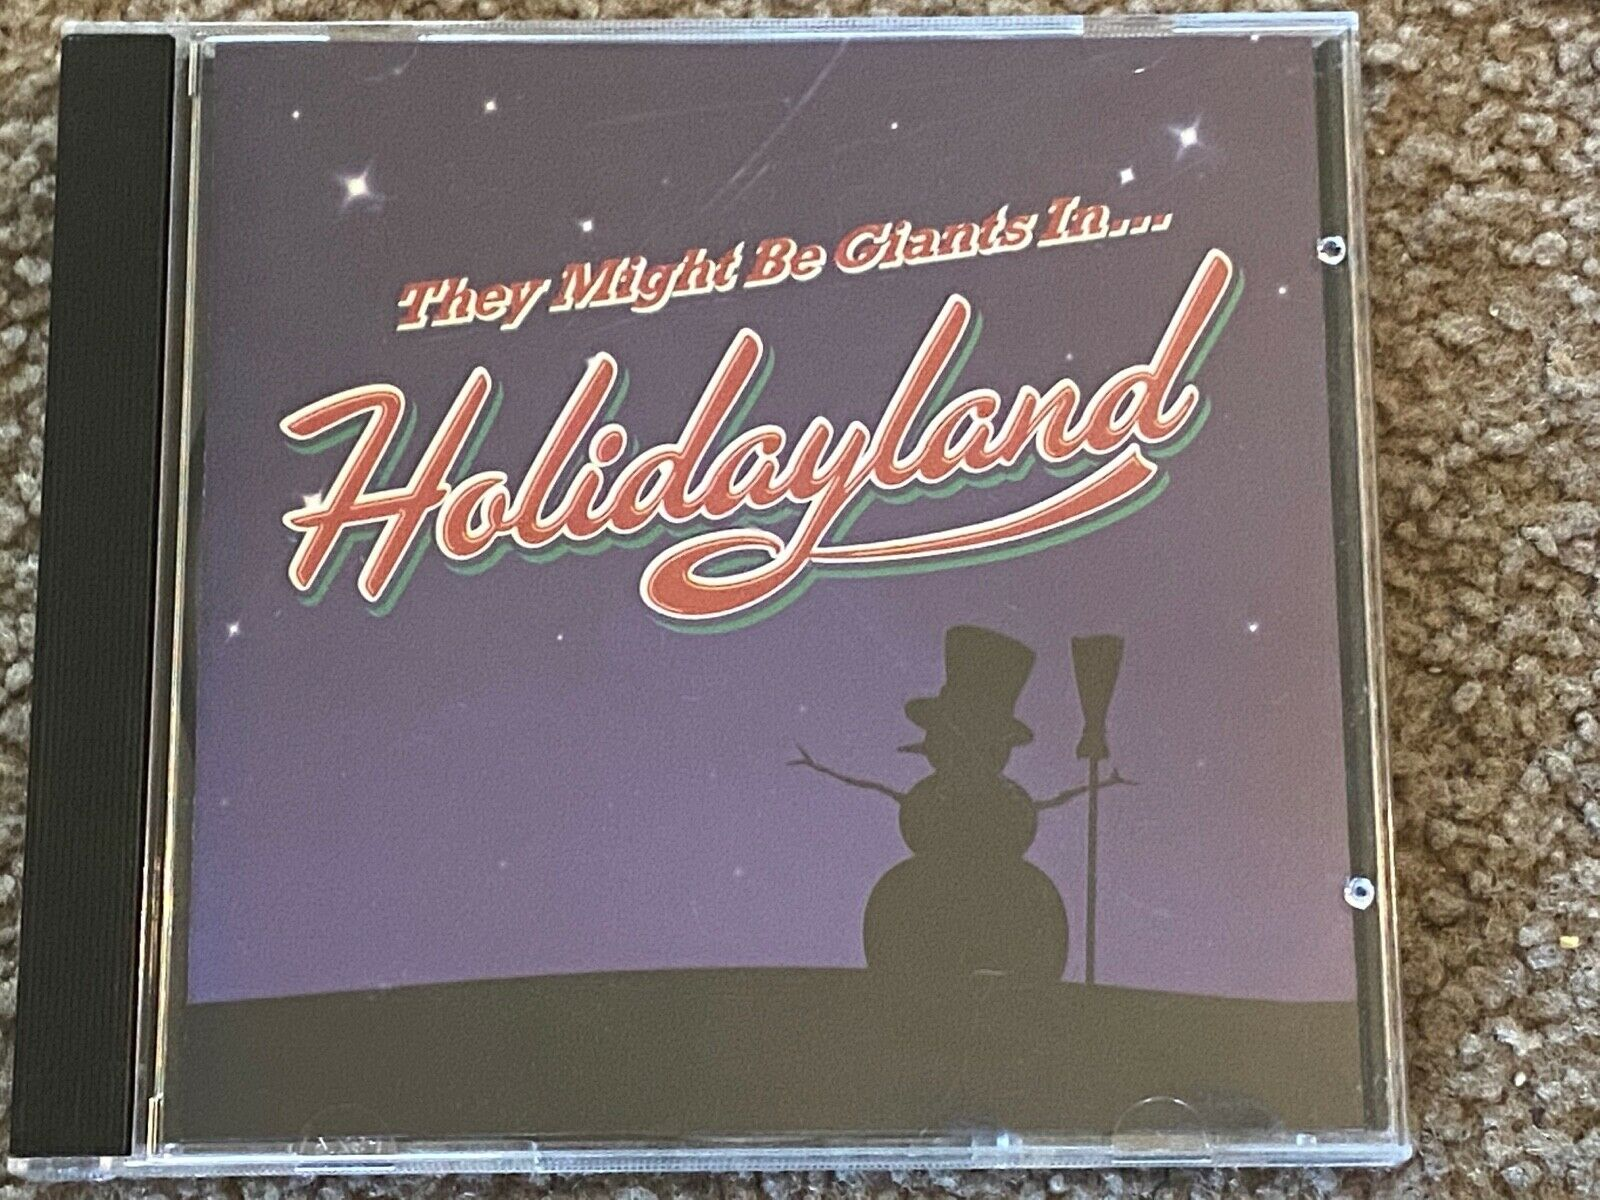 They Might Be Giants Holidayland 2001 Restless Records Little Played - $2.00